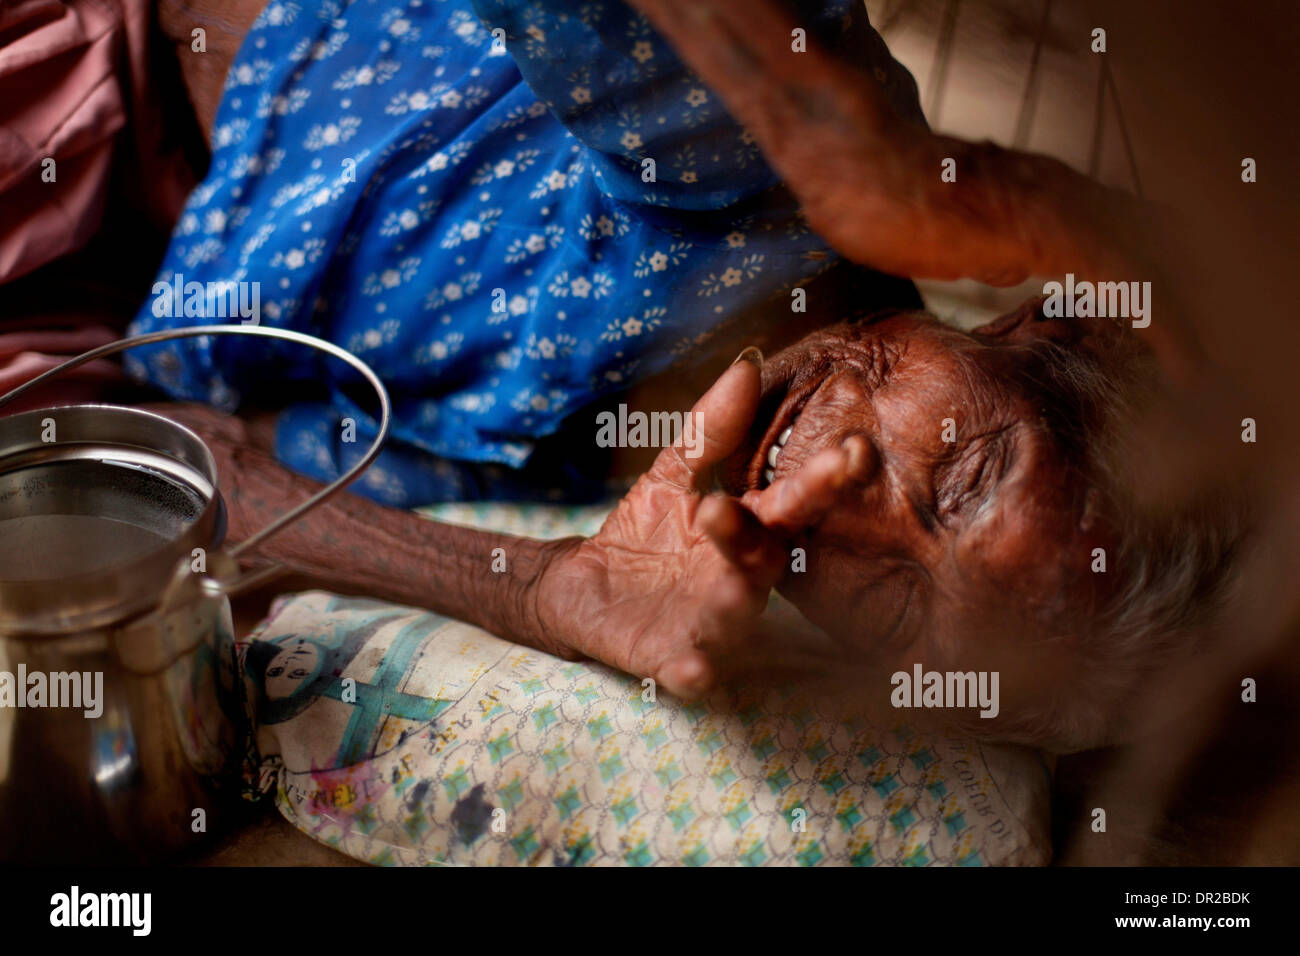 Jan. 12, 2009 - Amhedabad, India - An elderly blind woman suffering from polio lays under a cart on the side of Stock Photo